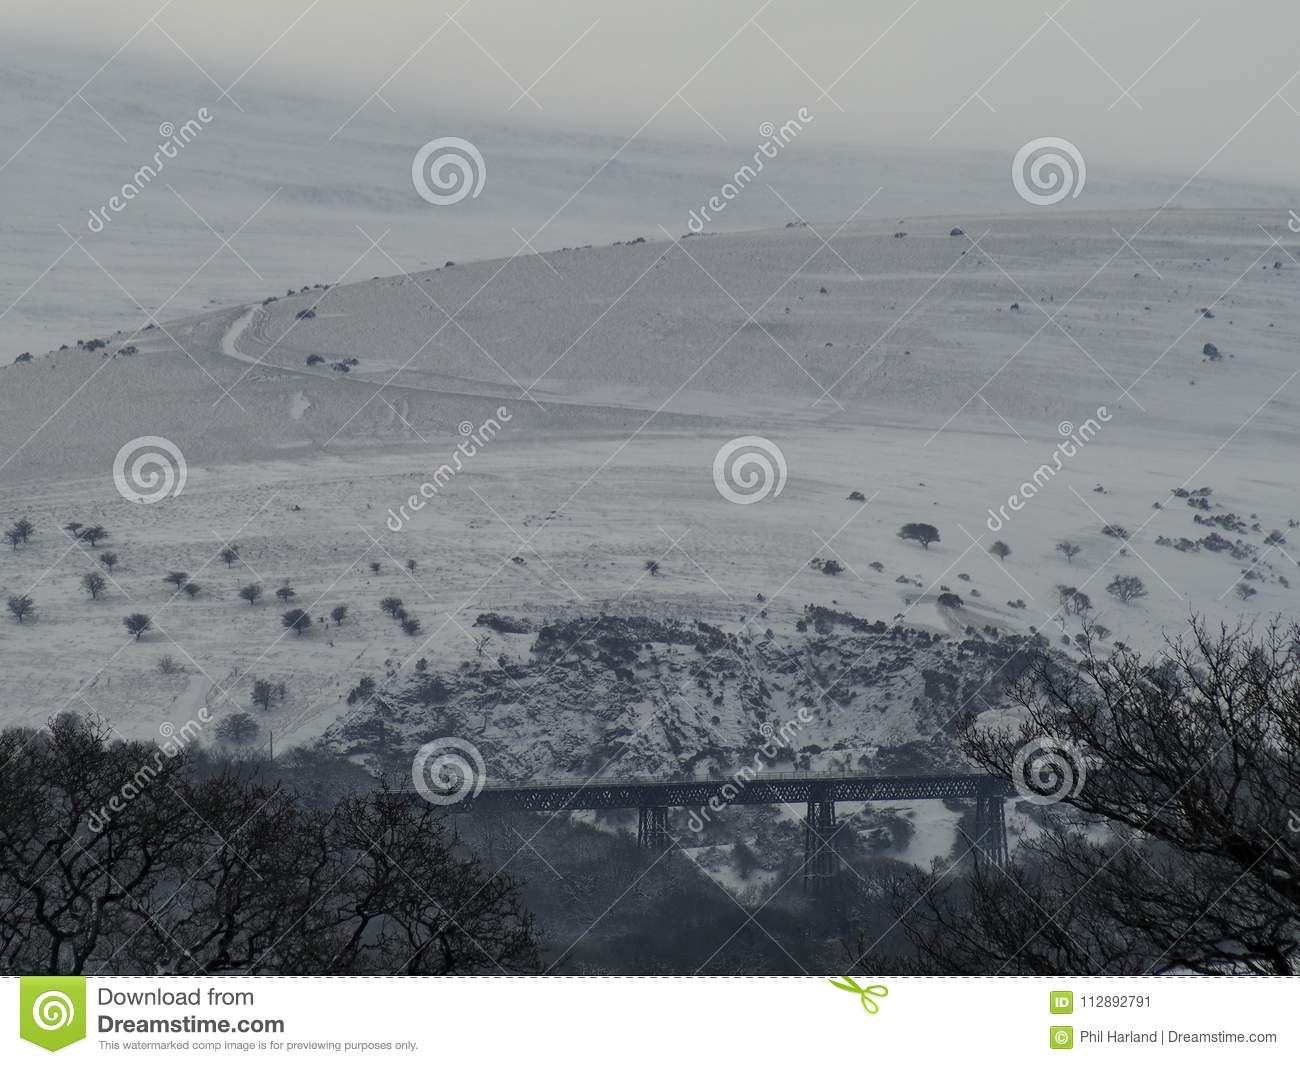 Meldon viaduct in the snow with Longstone Hill in the background, Dartmoor